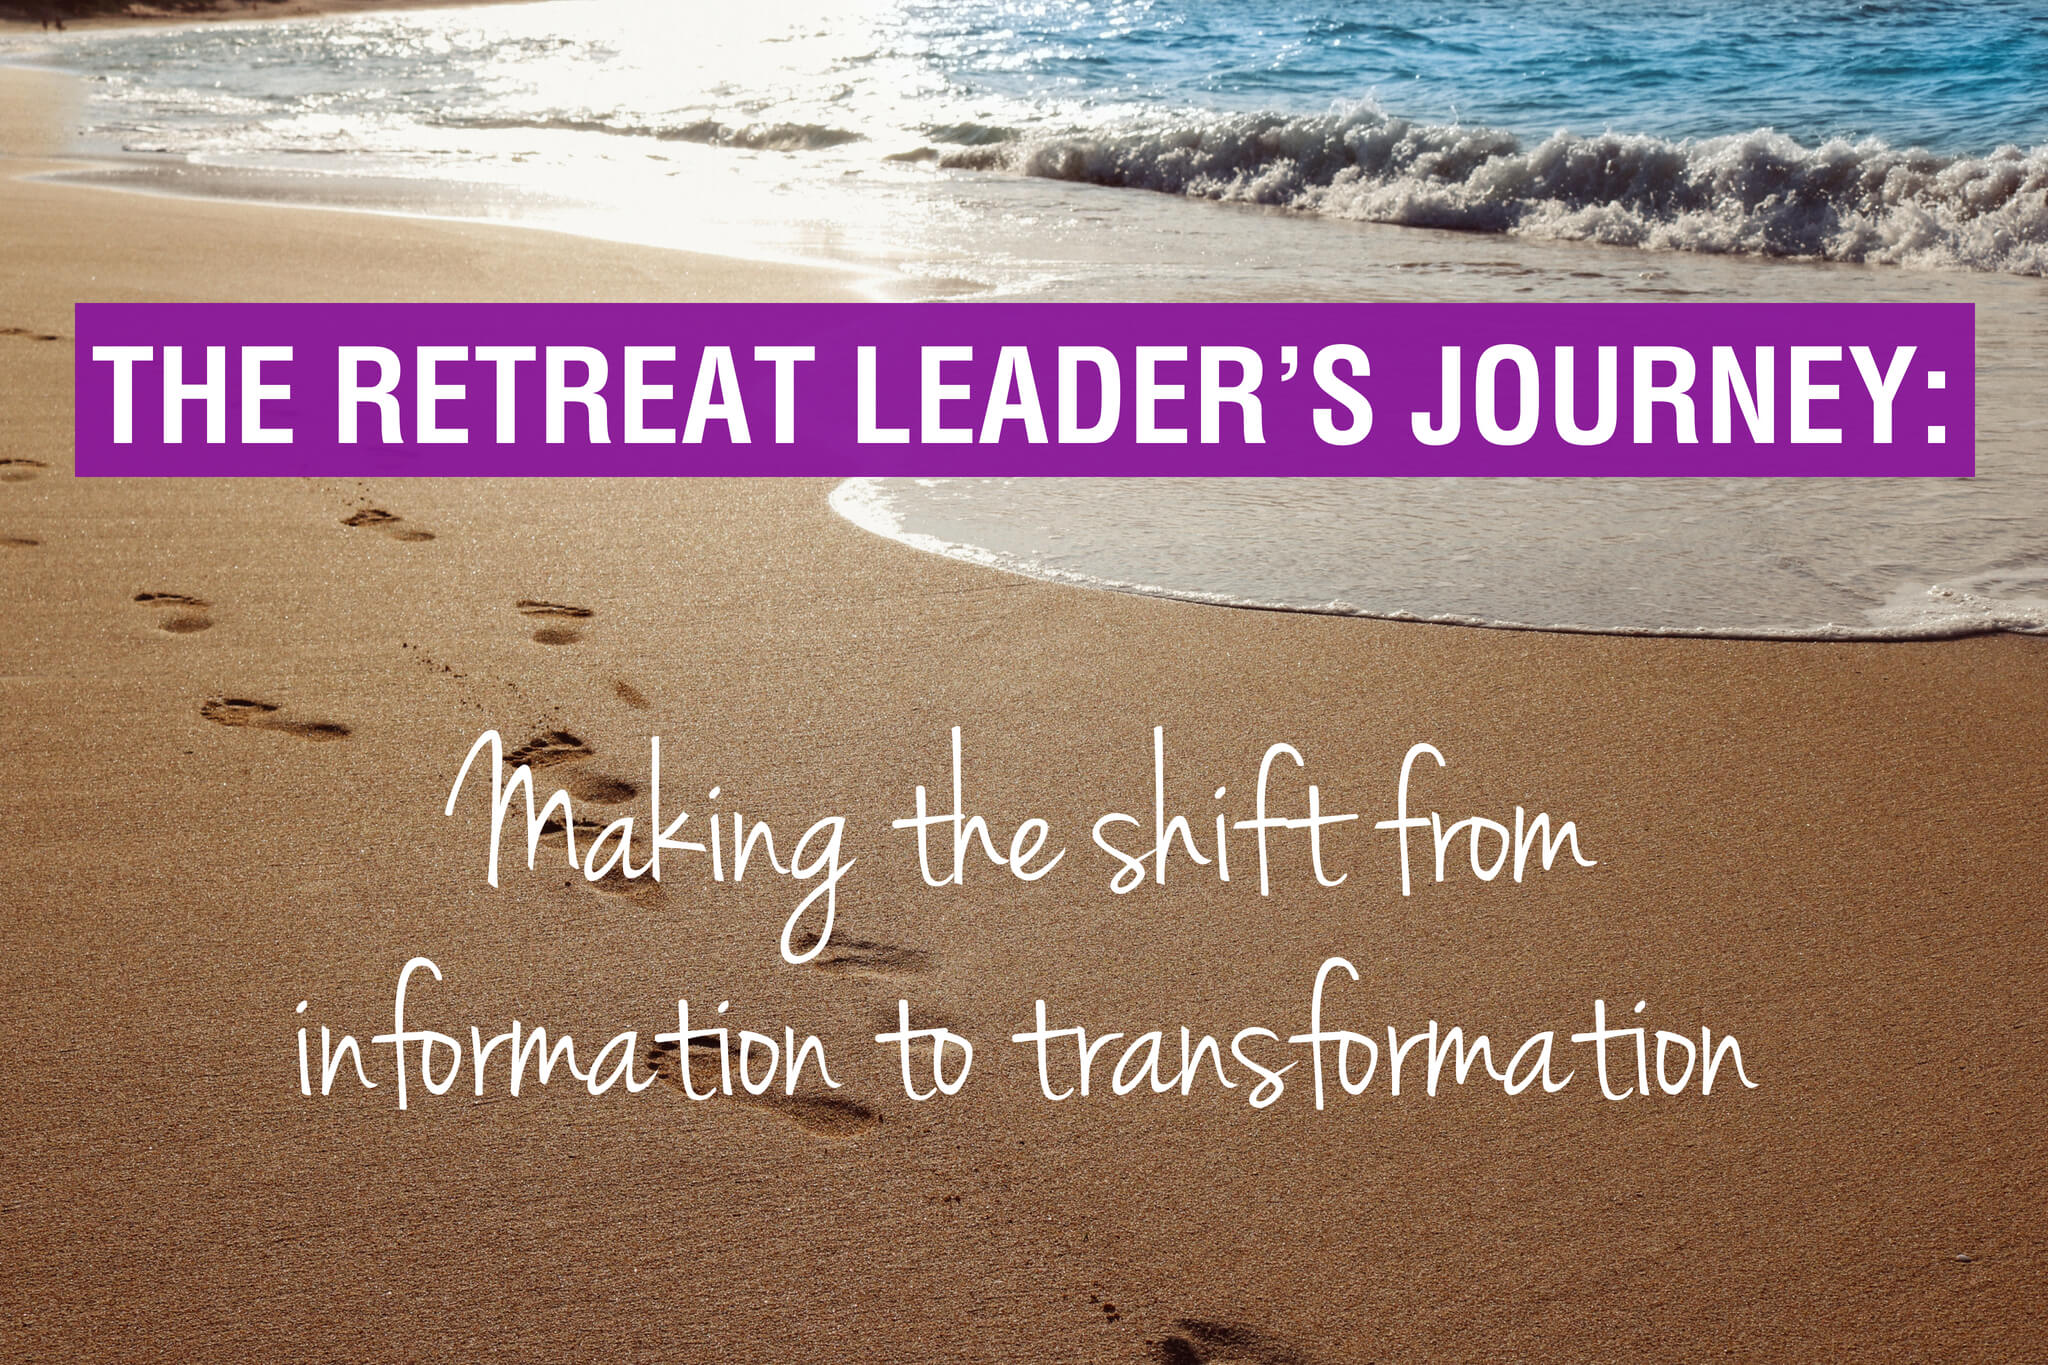 The retreat leader's journey: Making the shift from information to transformation